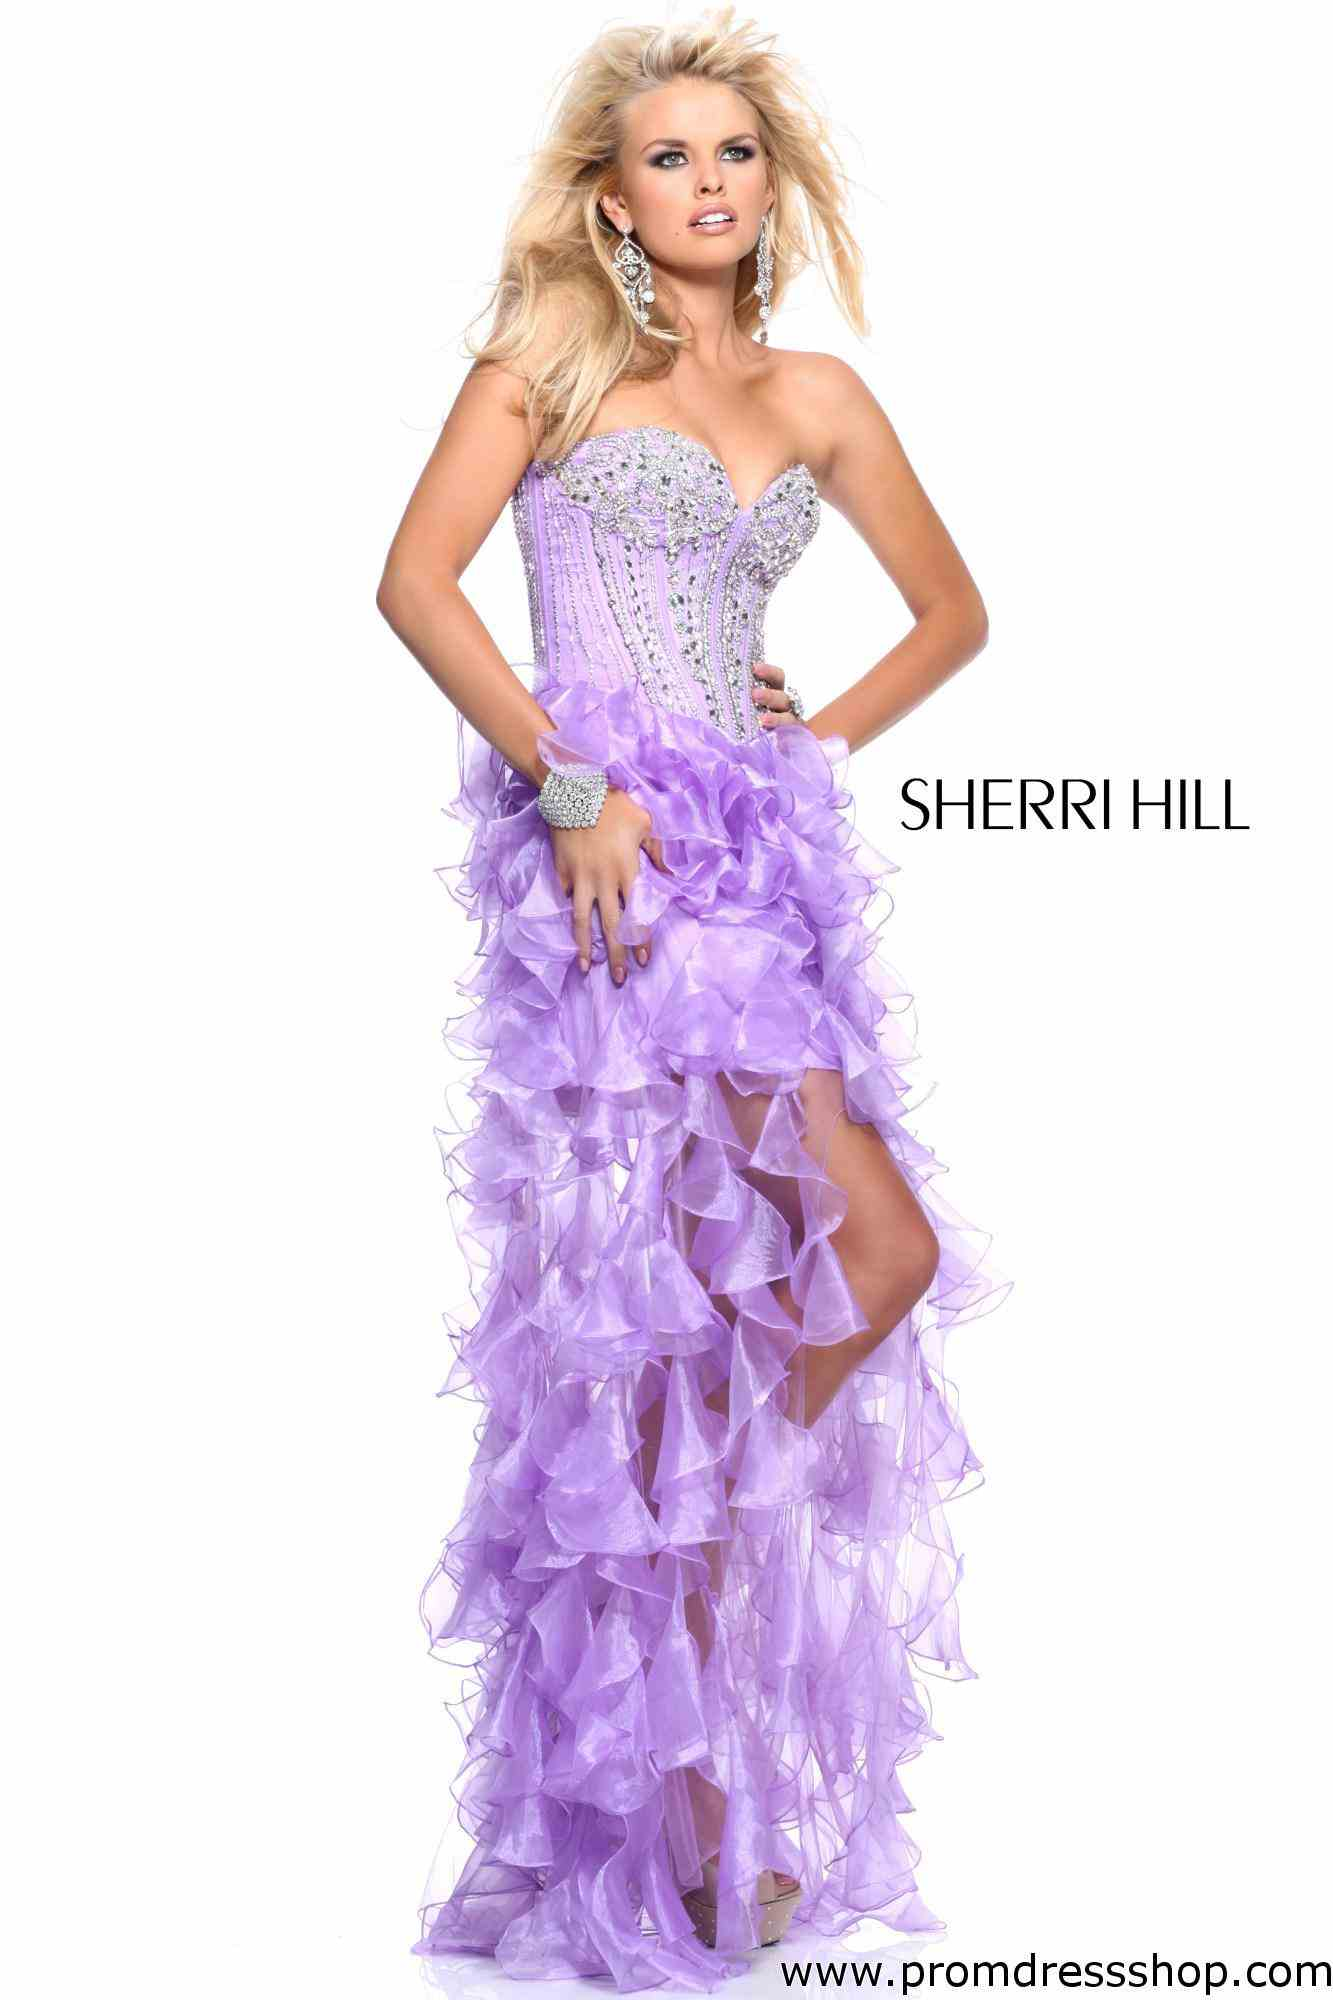 Prom Dresses Sherri Hill - Long Dresses Online